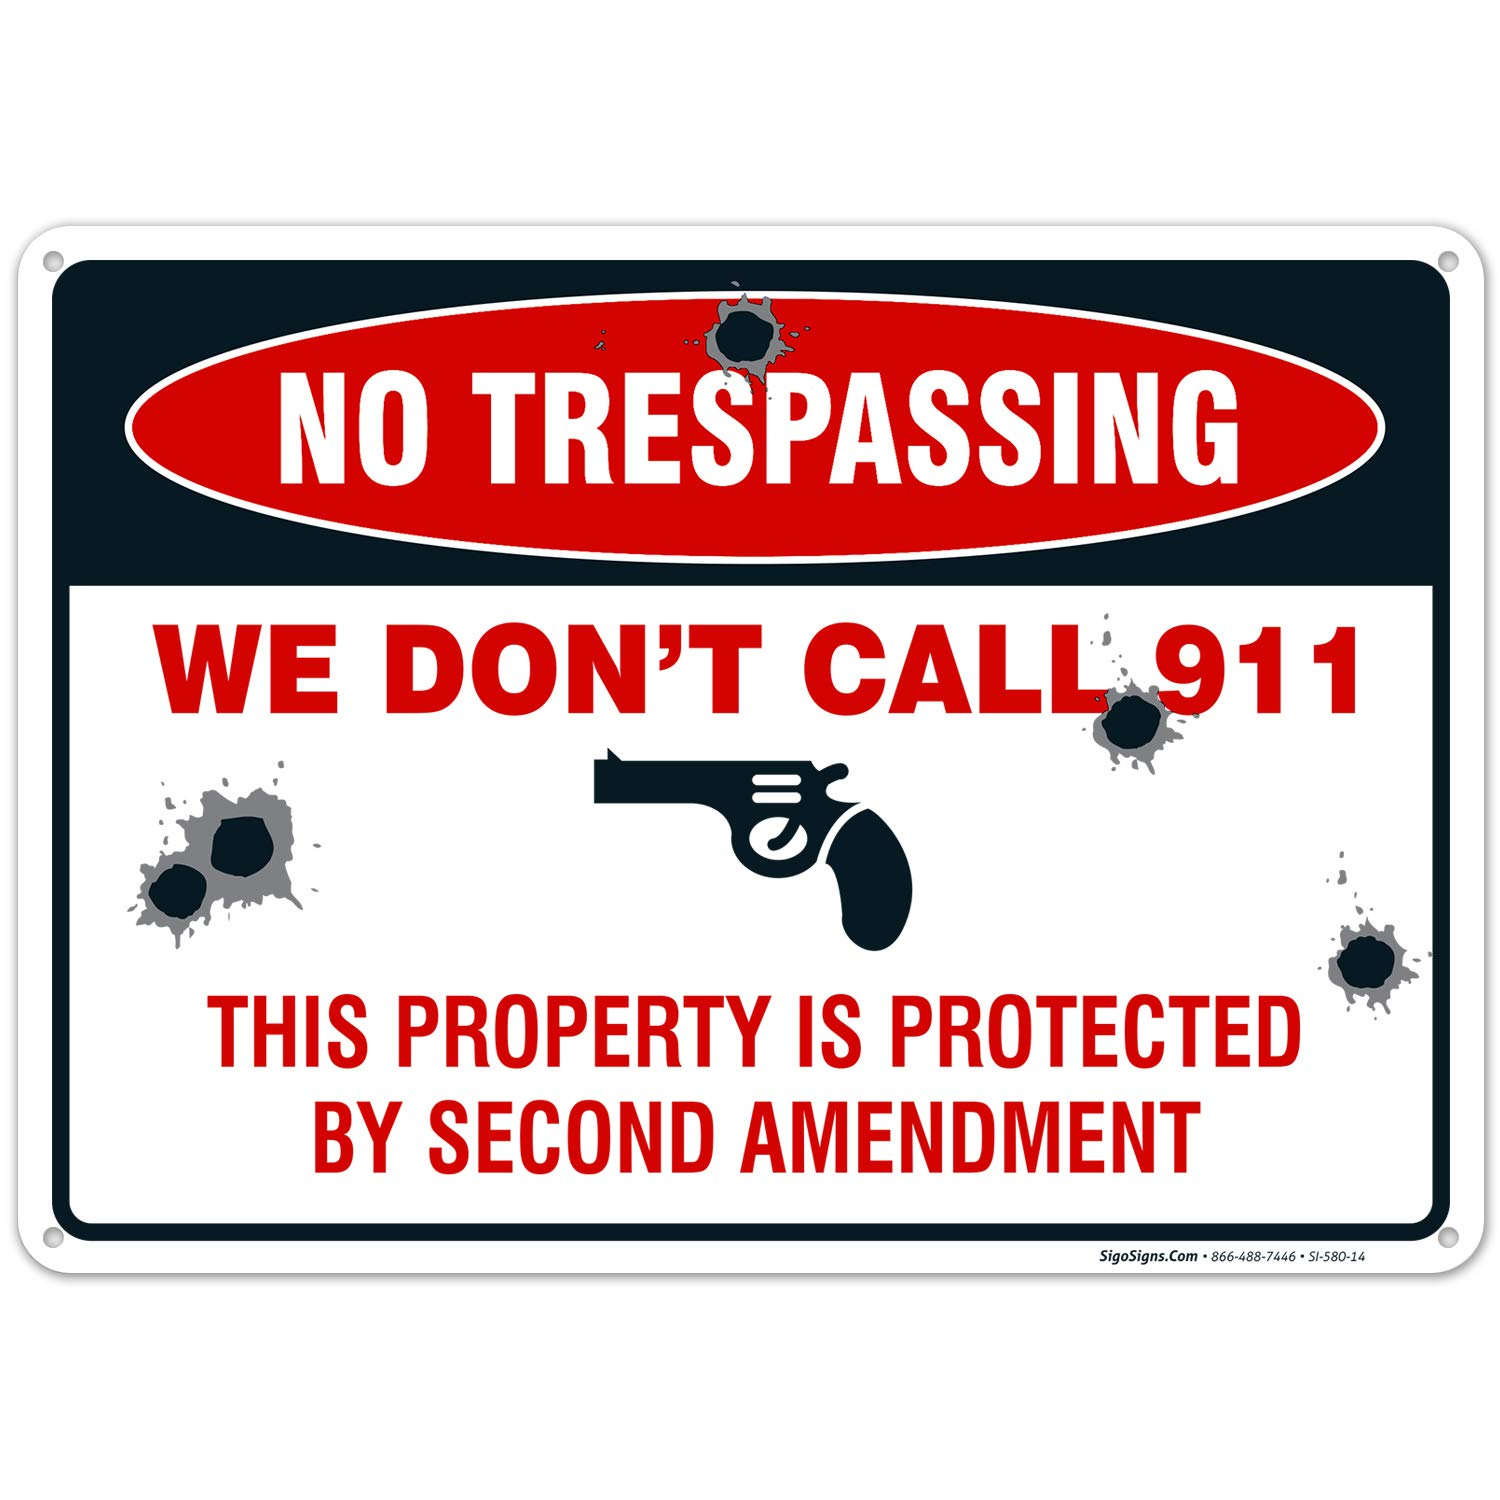 We Dont Call 911 Sign, This Property is Protected by Second Amendment, 10x14 Rust Free Aluminum, Weather/Fade Resistant, Easy Mounting, Indoor/Outdoor Use, Made in USA by SIGO SIGNS